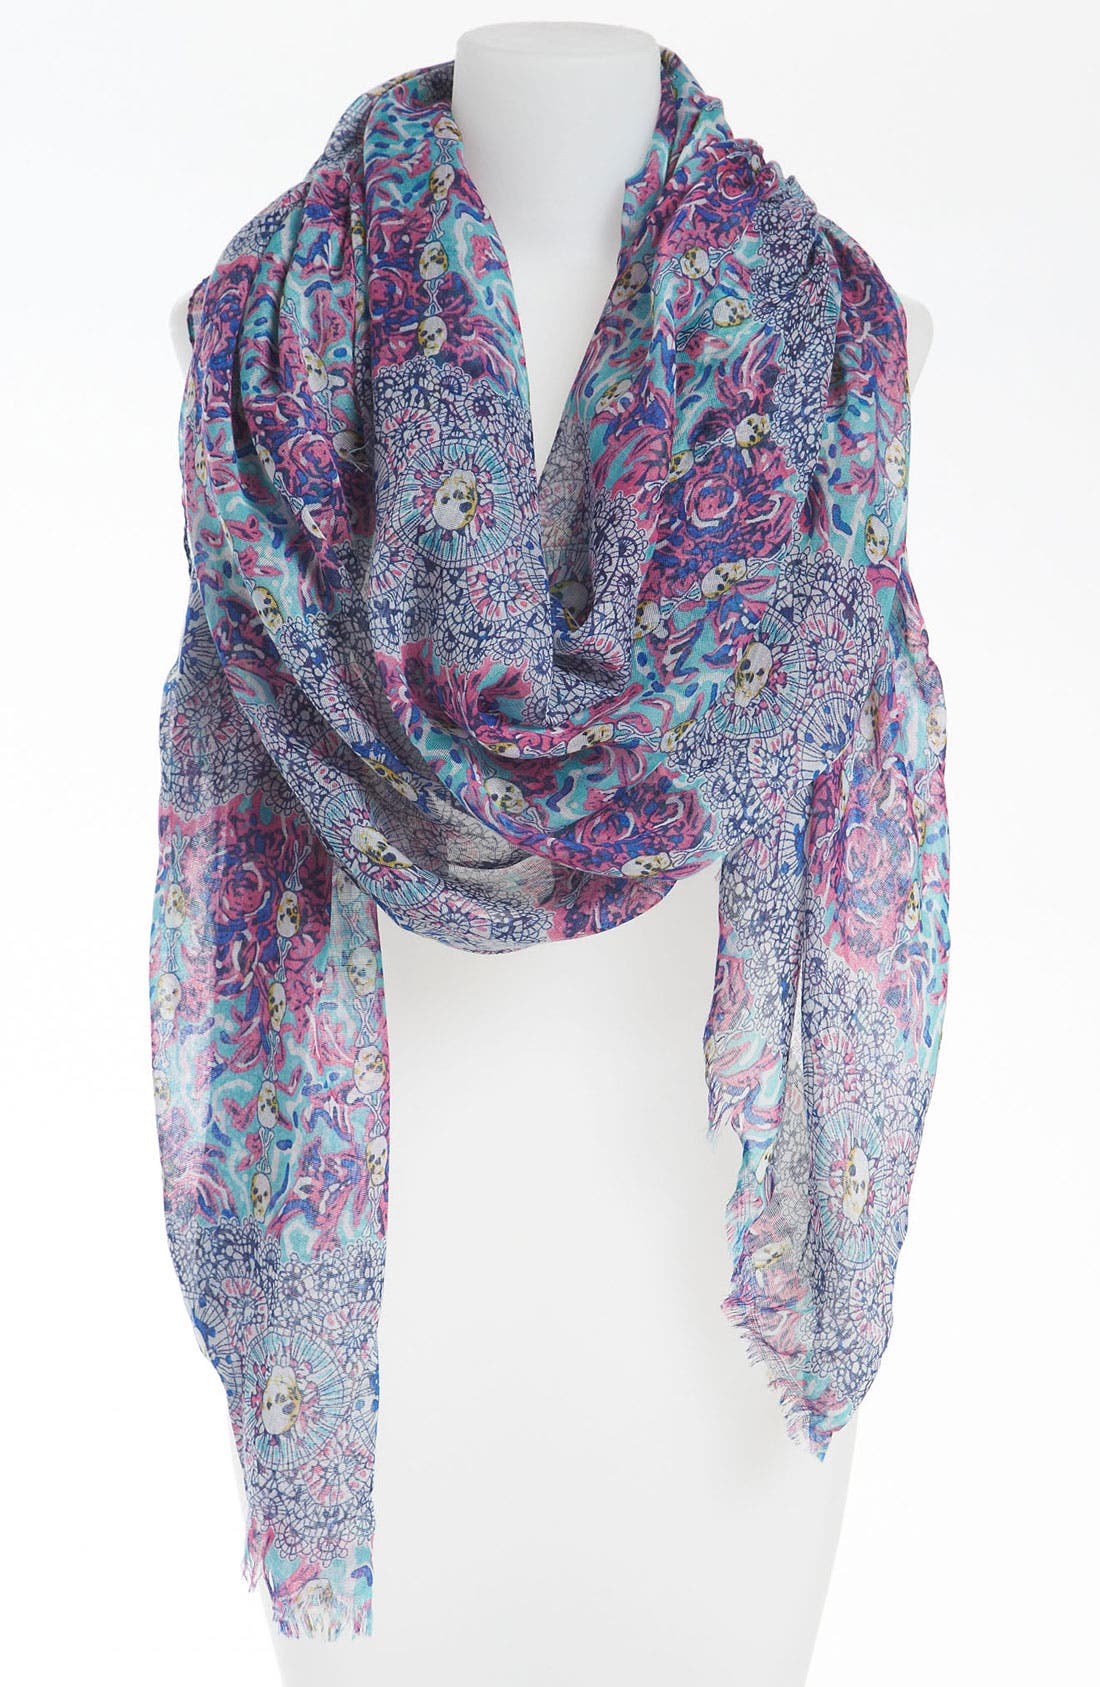 Alternate Image 1 Selected - BP. Skull Print Sheer Scarf